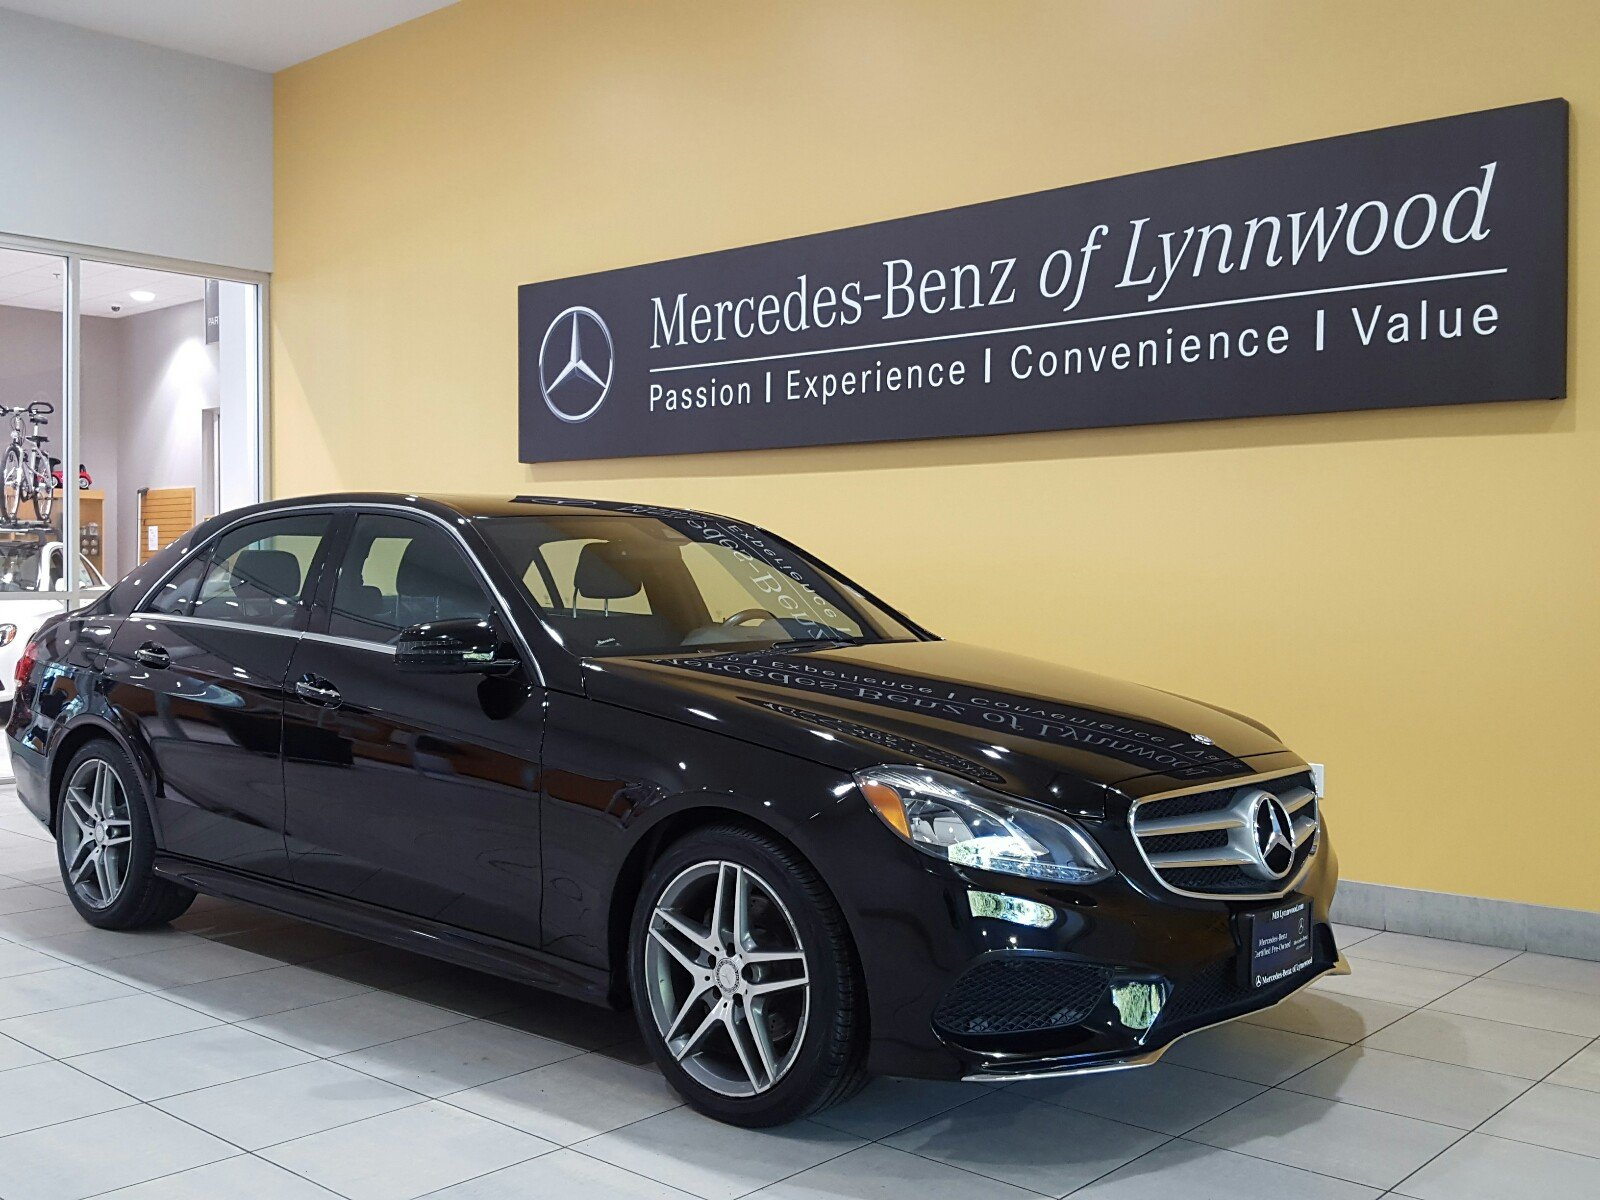 Certified pre owned 2015 mercedes benz e class e 350 sport for Mercedes benz cpo special offers